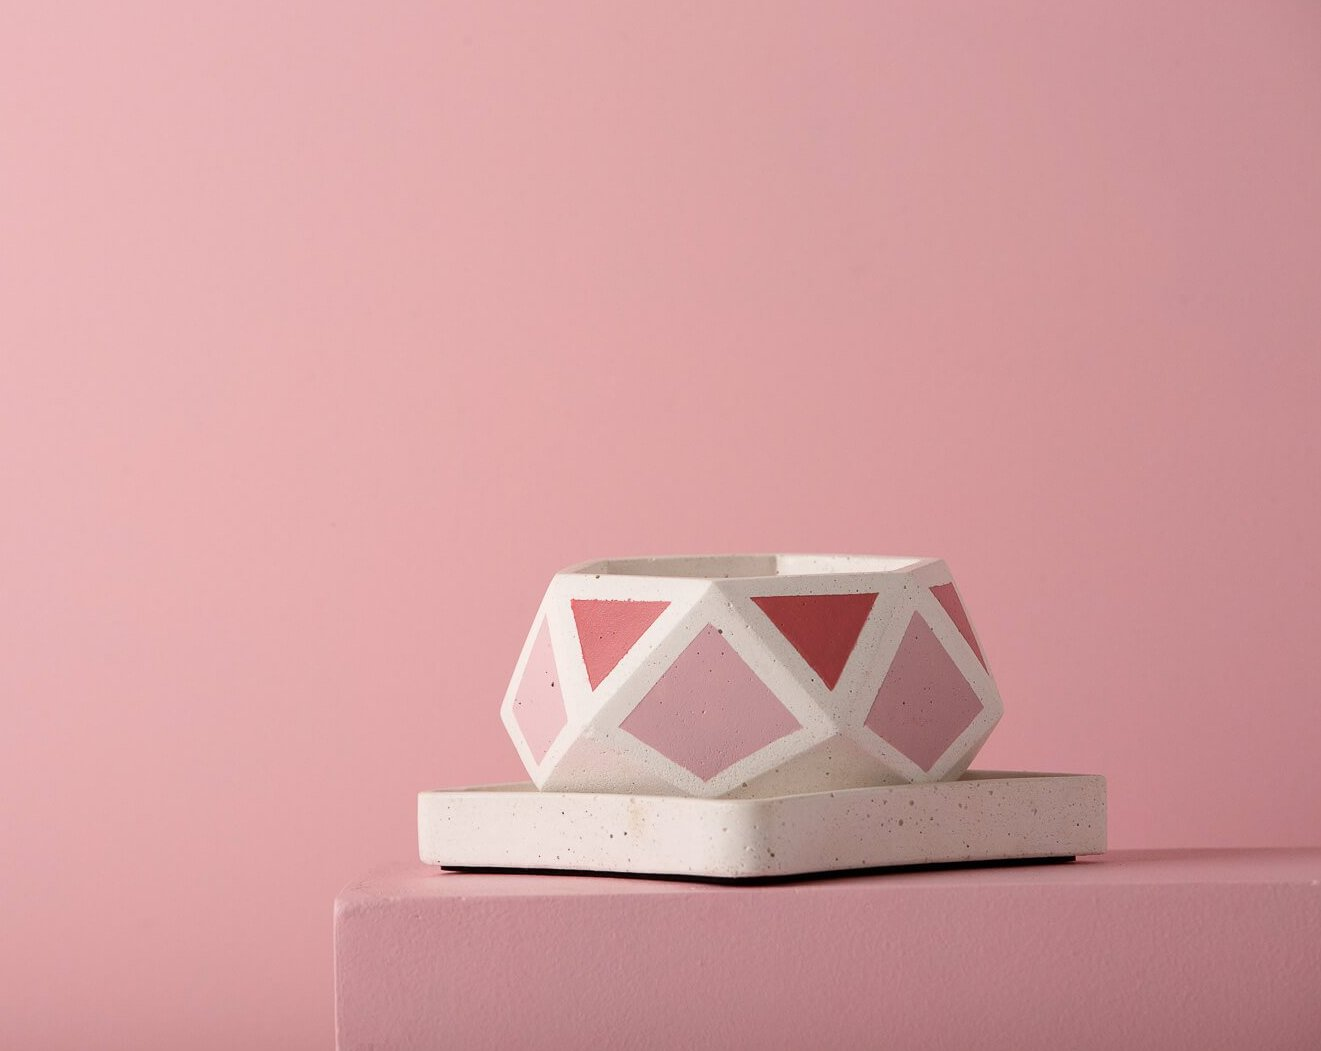 Concrete Hexamont Planter - Pink Invertrix Collection - Eliteearth